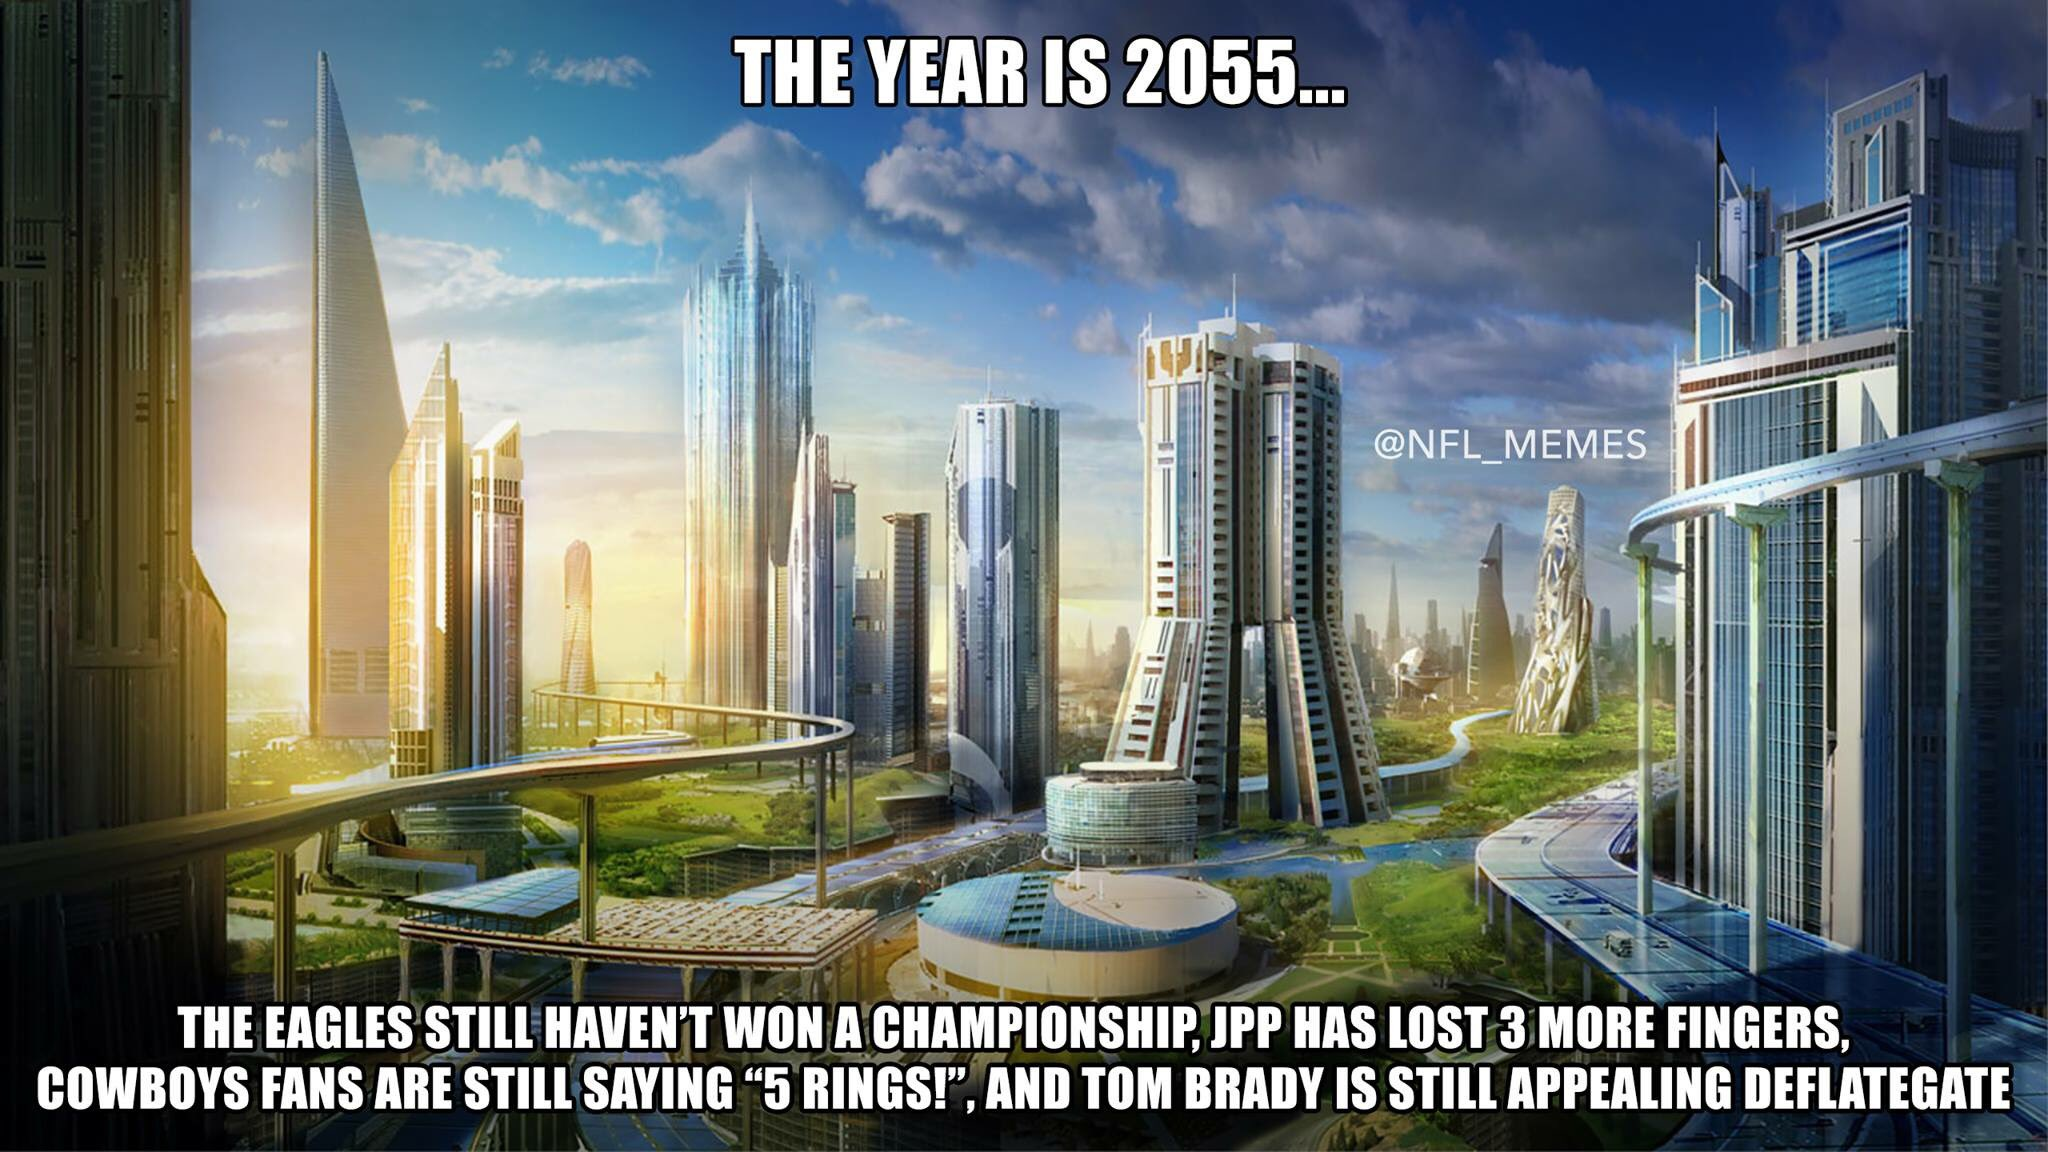 Nfl Memes On Twitter Quot The Year Is 2055